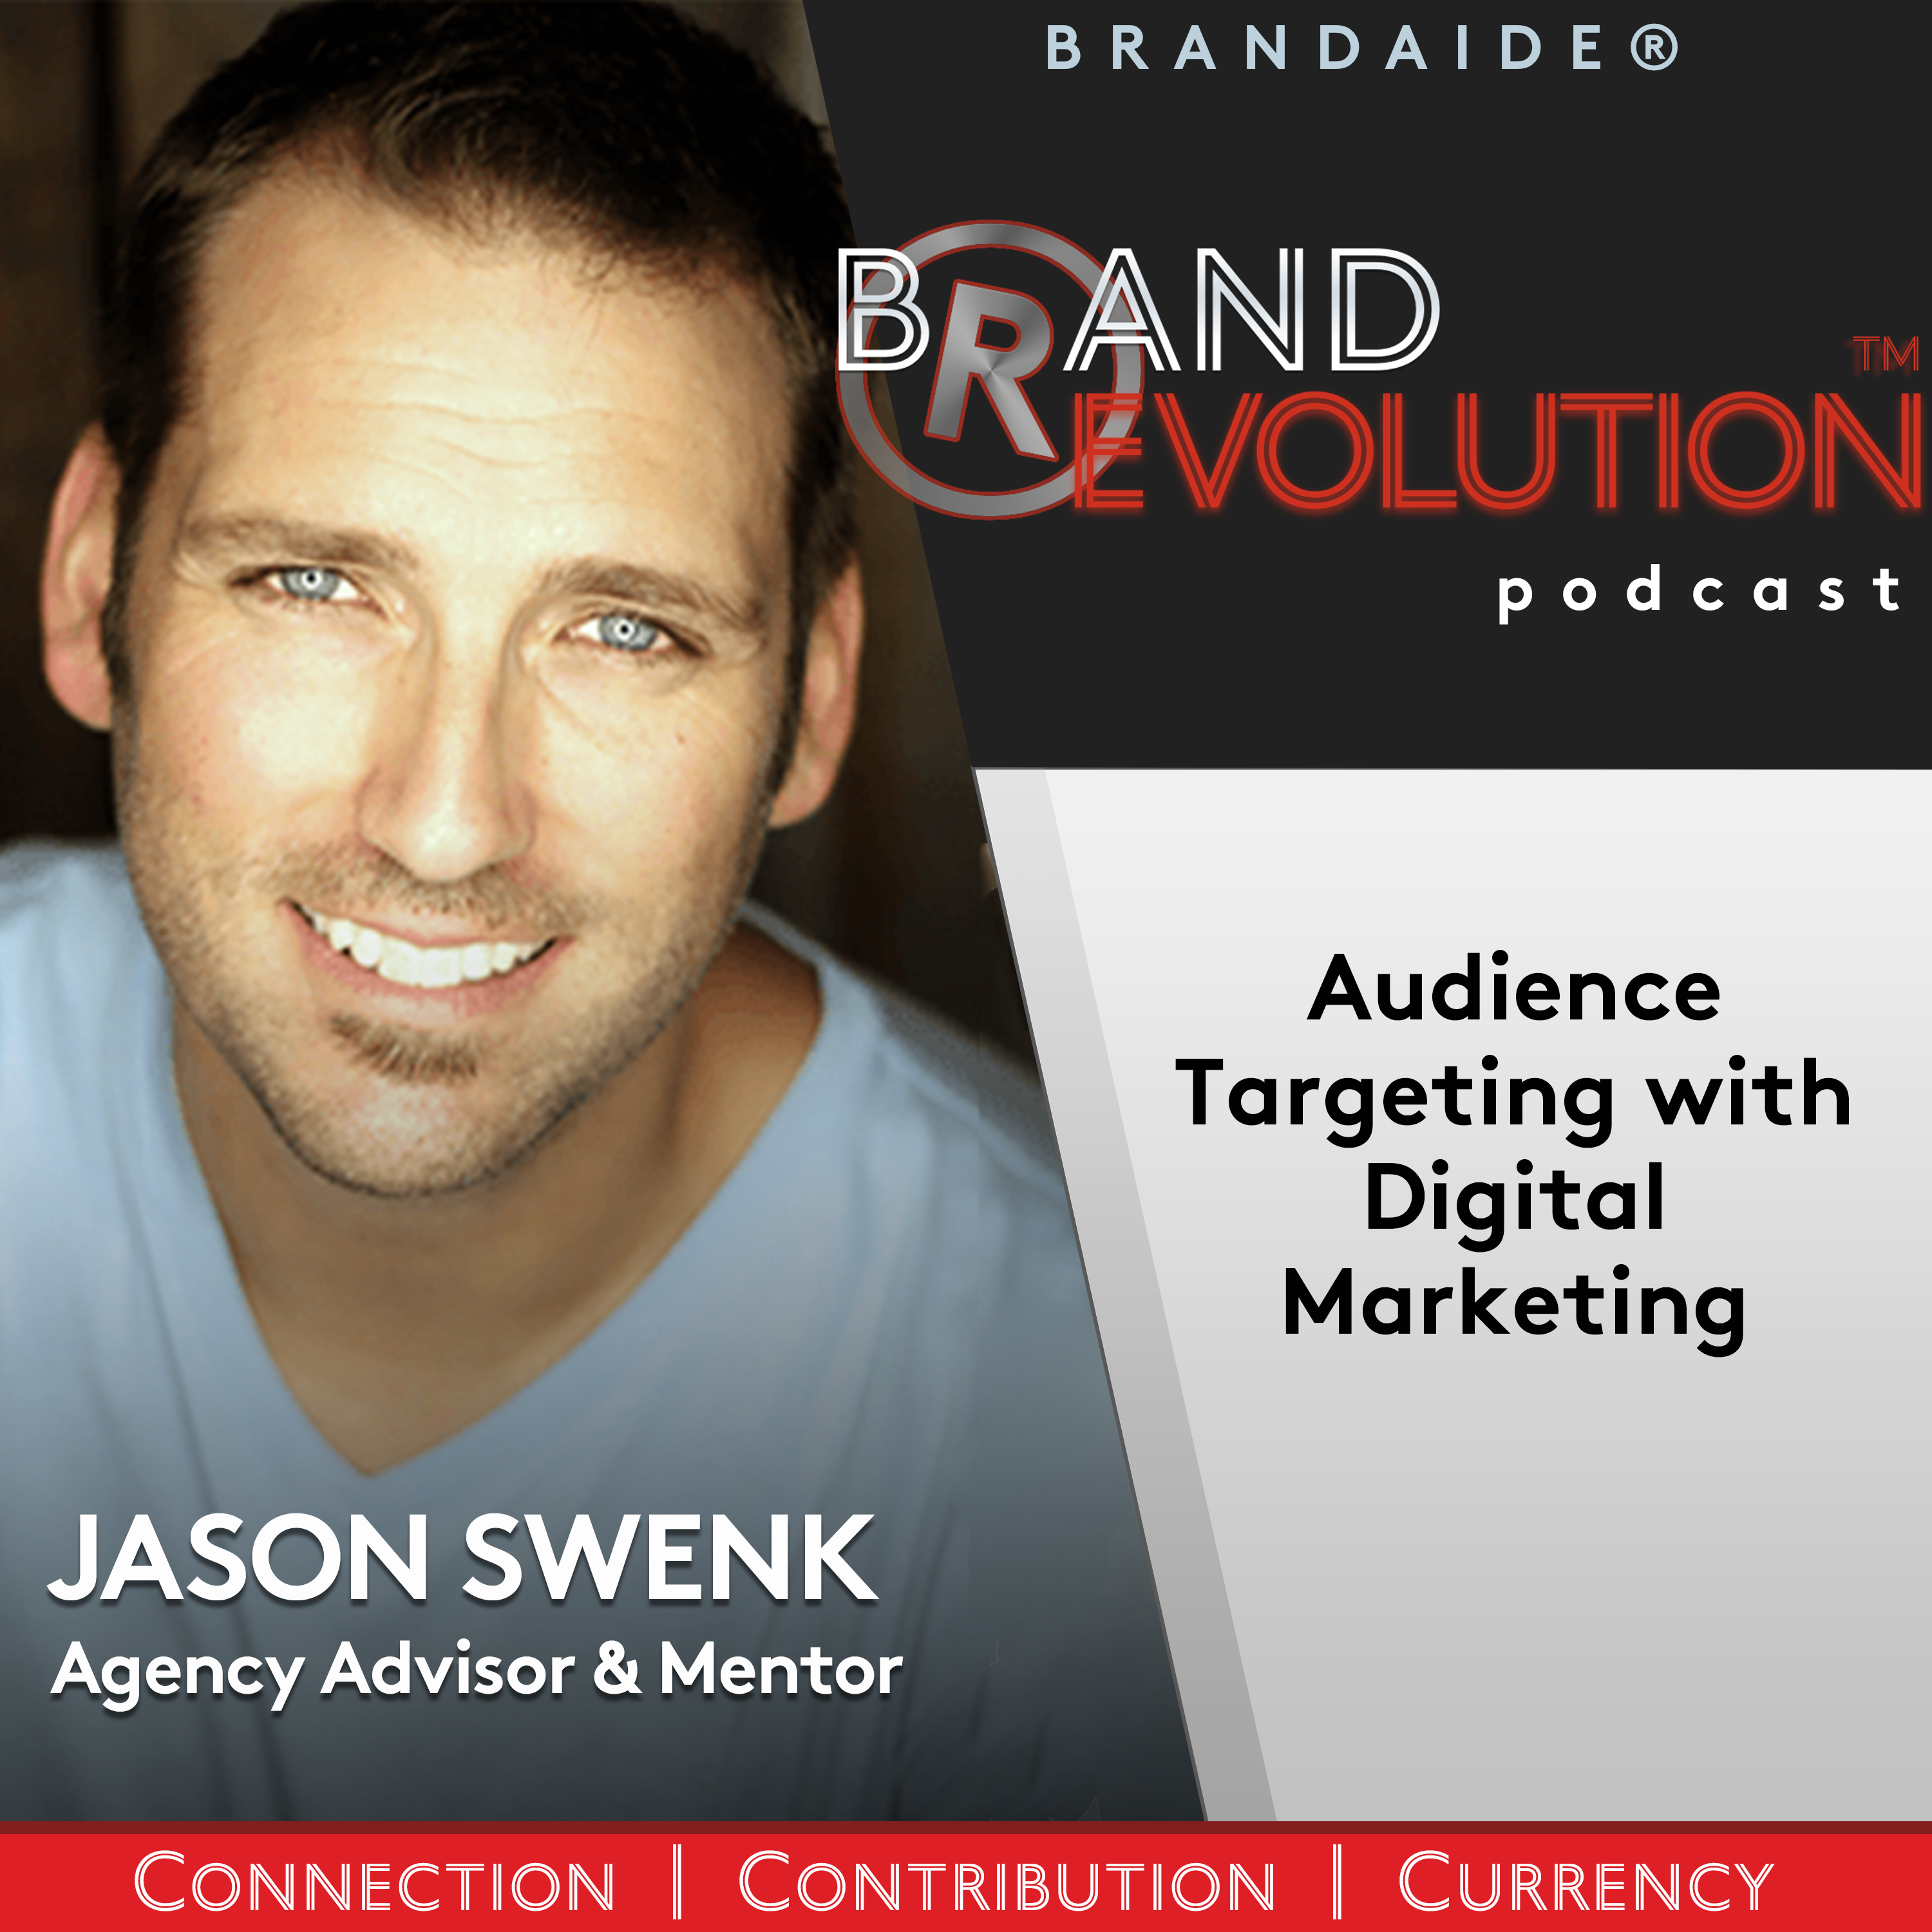 Audience Targeting with Digital Marketing – Jason Swenk